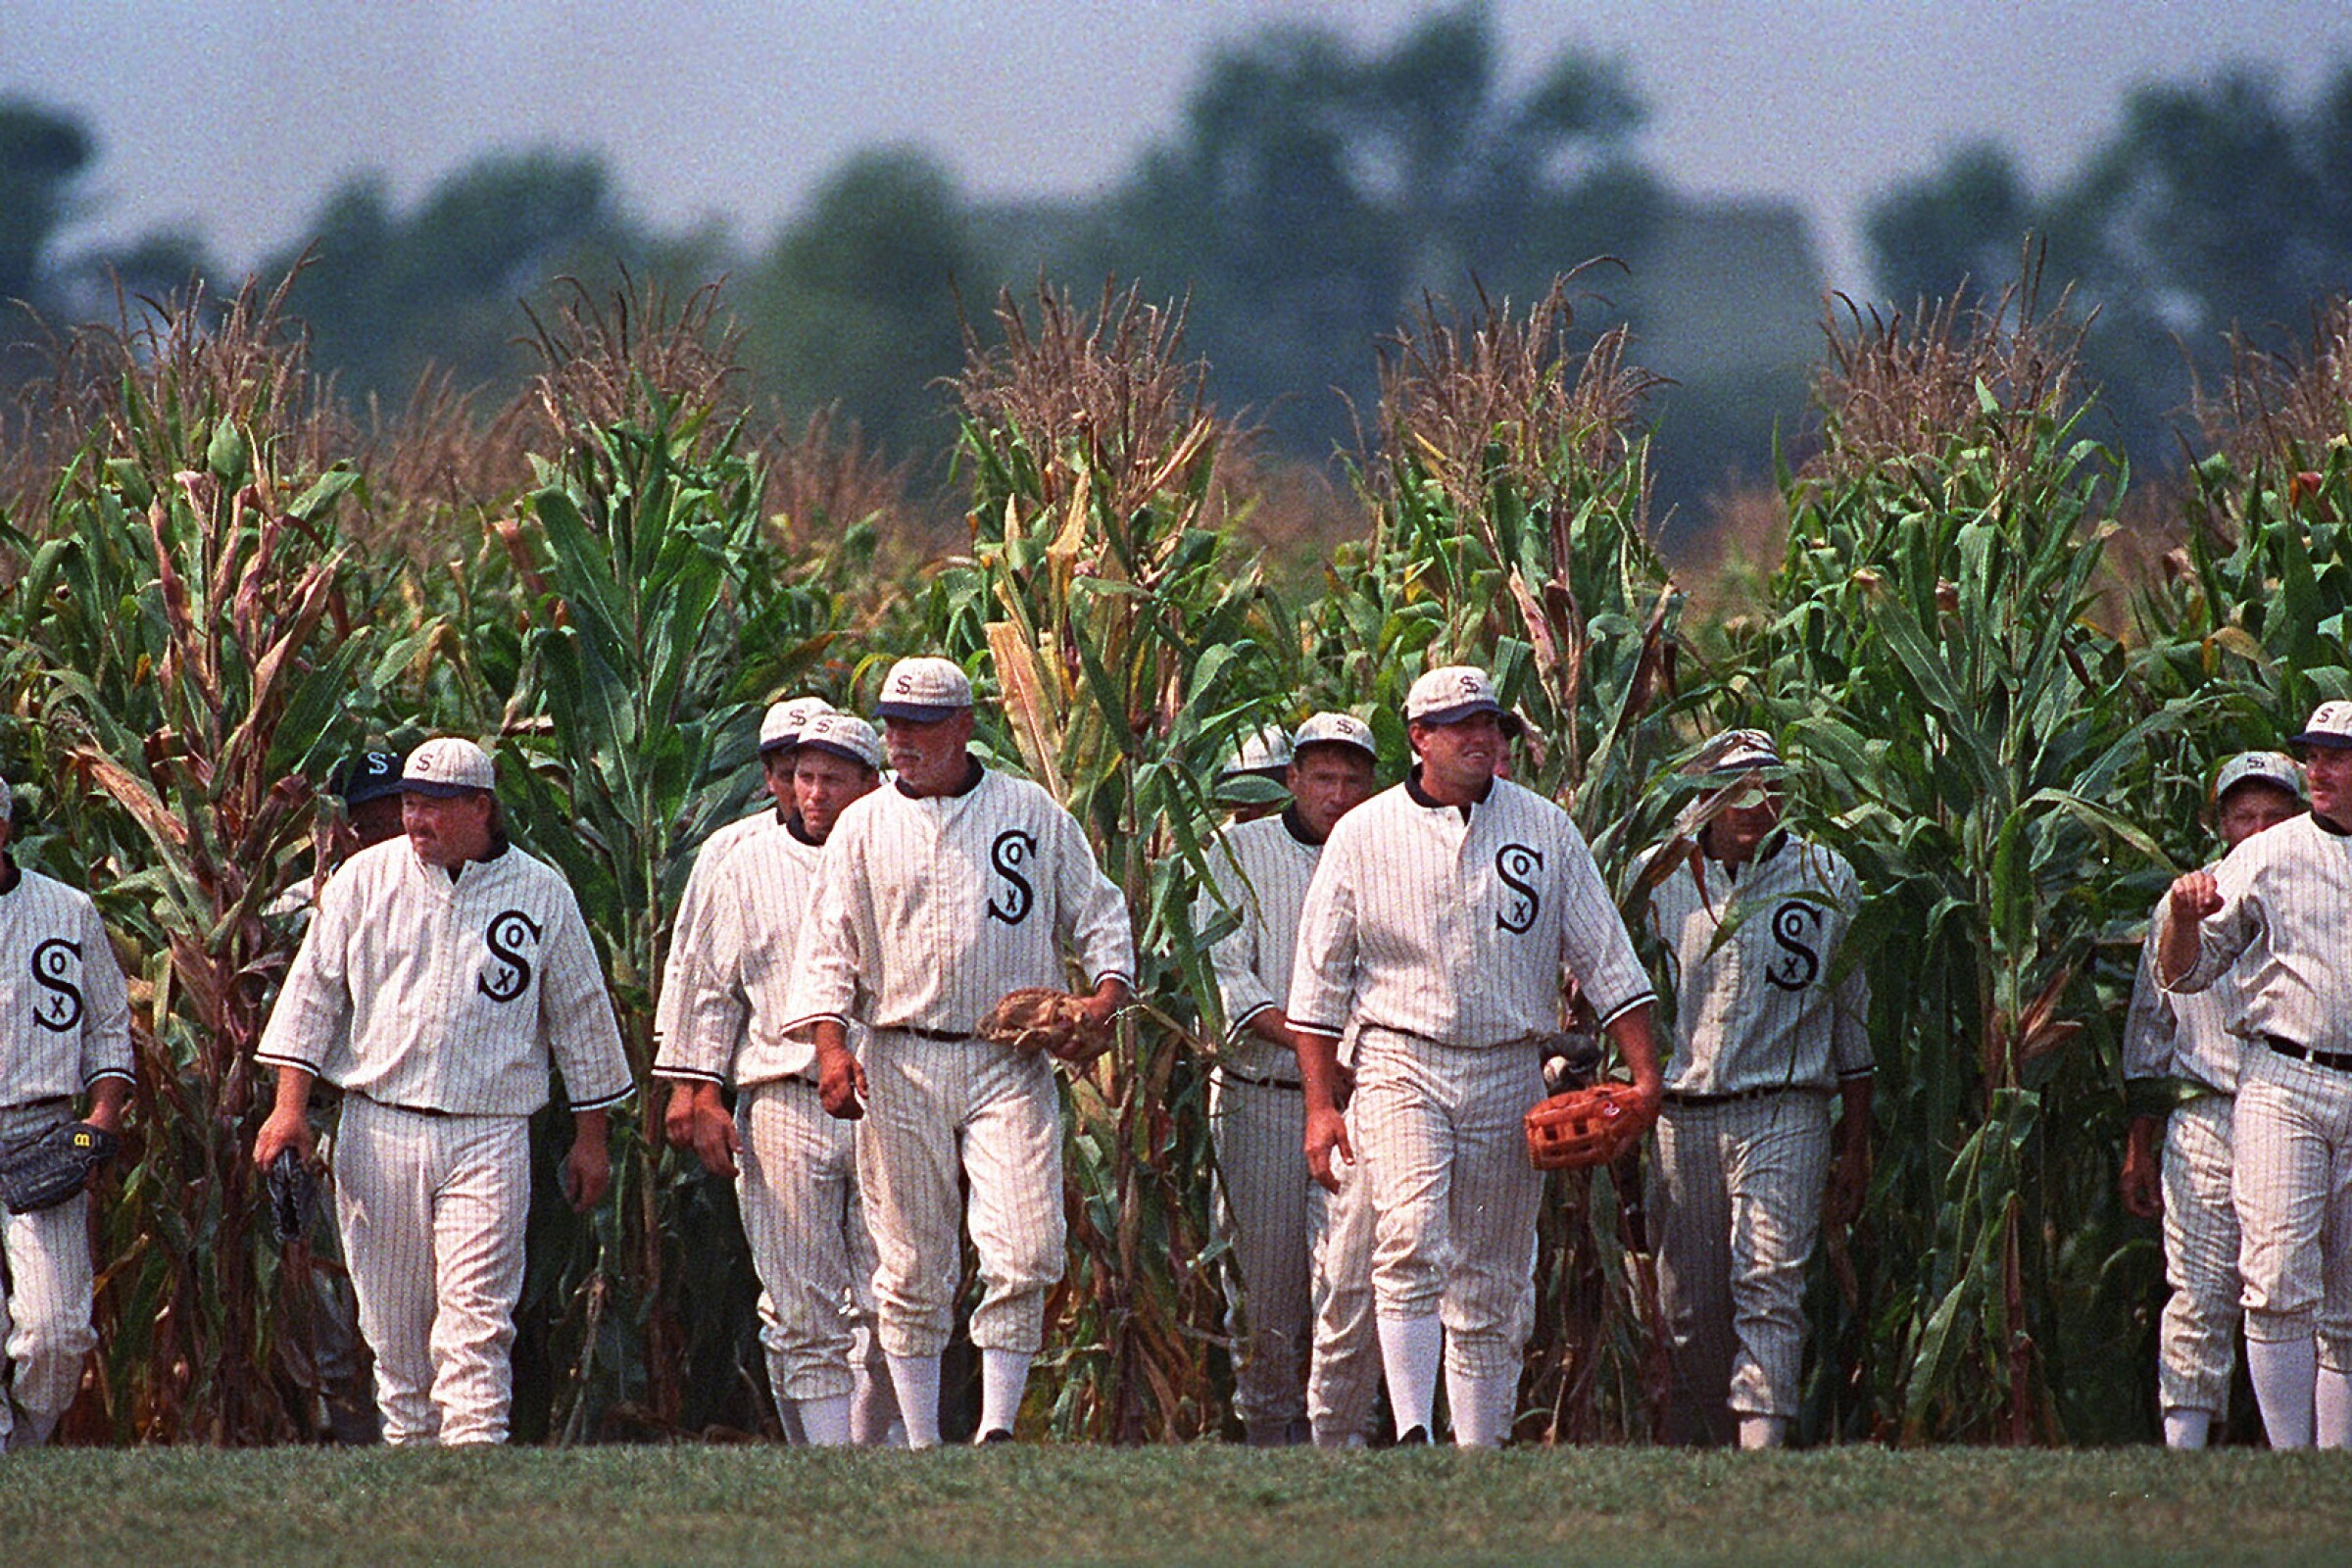 """Actors portraying ghost baseball players emerge from the cornfield at the """"Field of Dreams"""" movie site in Iowa."""